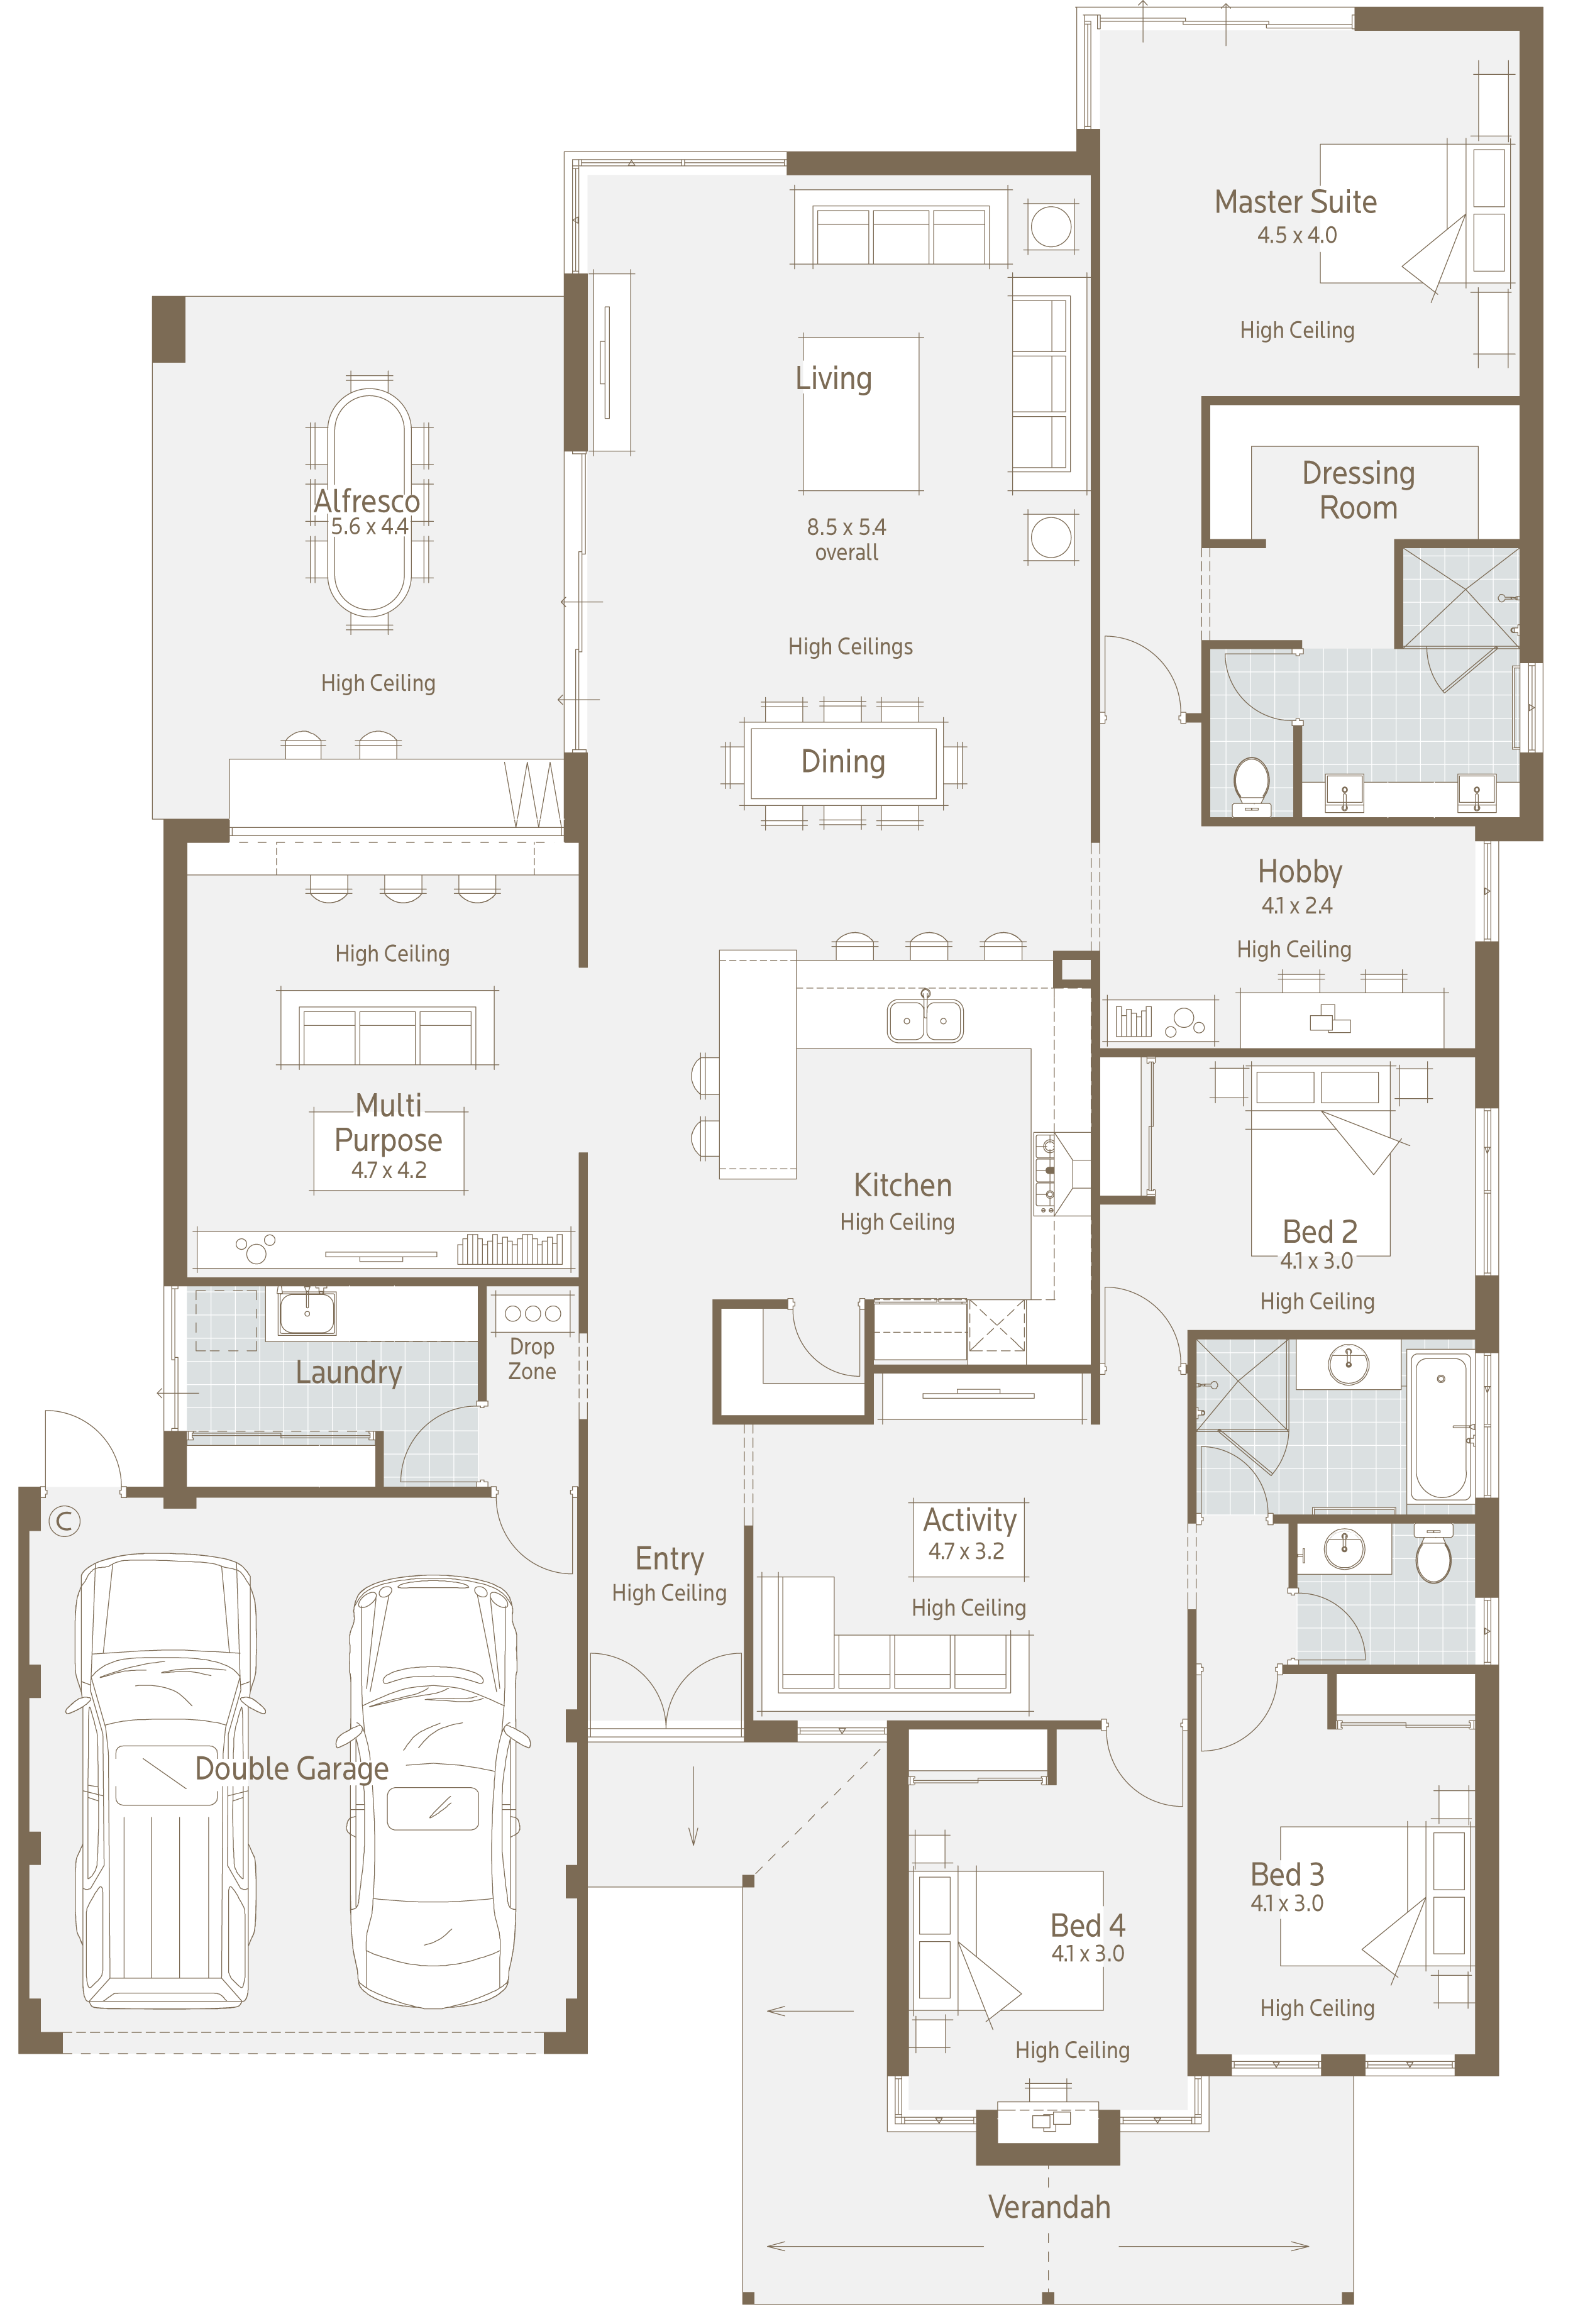 Heres a nice floor plan for a normal residential block what i immediately liked is the multipurpose room